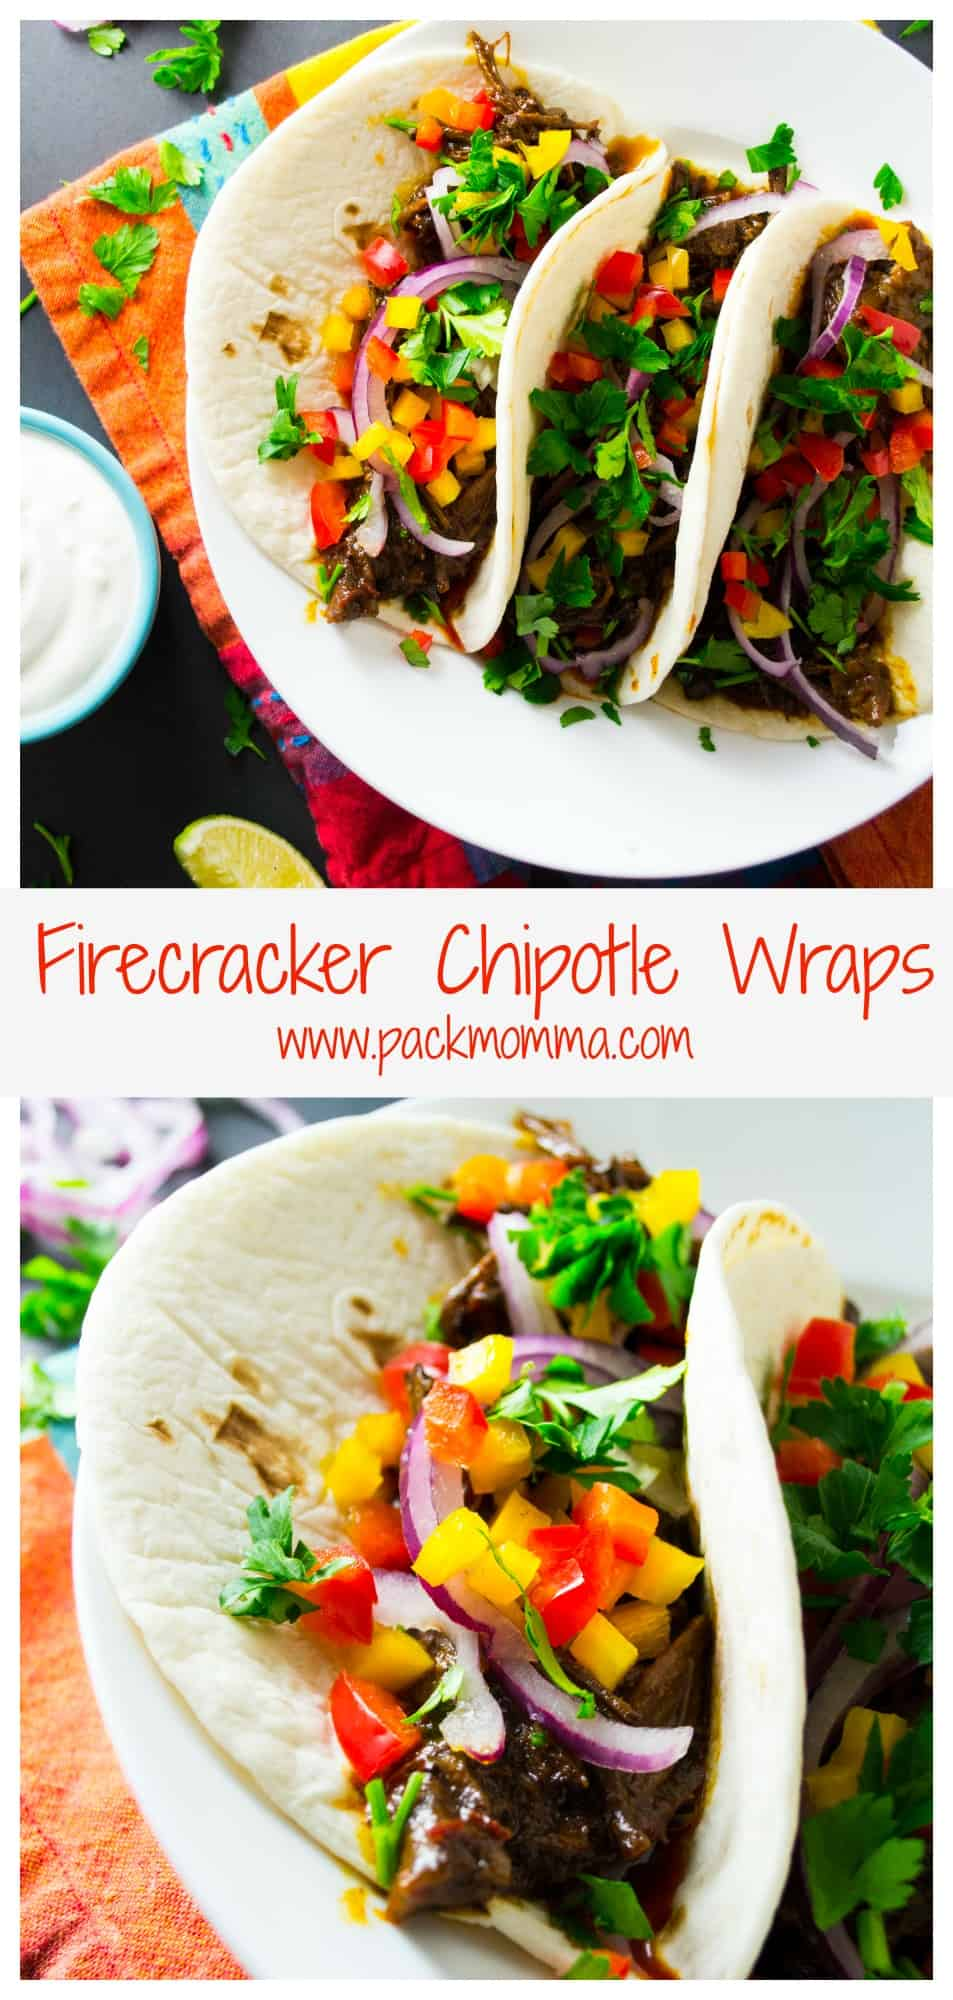 Firecracker Chipotle Beef Wraps | Firecracker Chipotle Beef Wraps are HOT, HOT, HOT with a hint of sweet.  They are the perfect meal to set your mouth on fire and have your belly rumbling for more!! | Pack Momma | https://www.packmomma.com